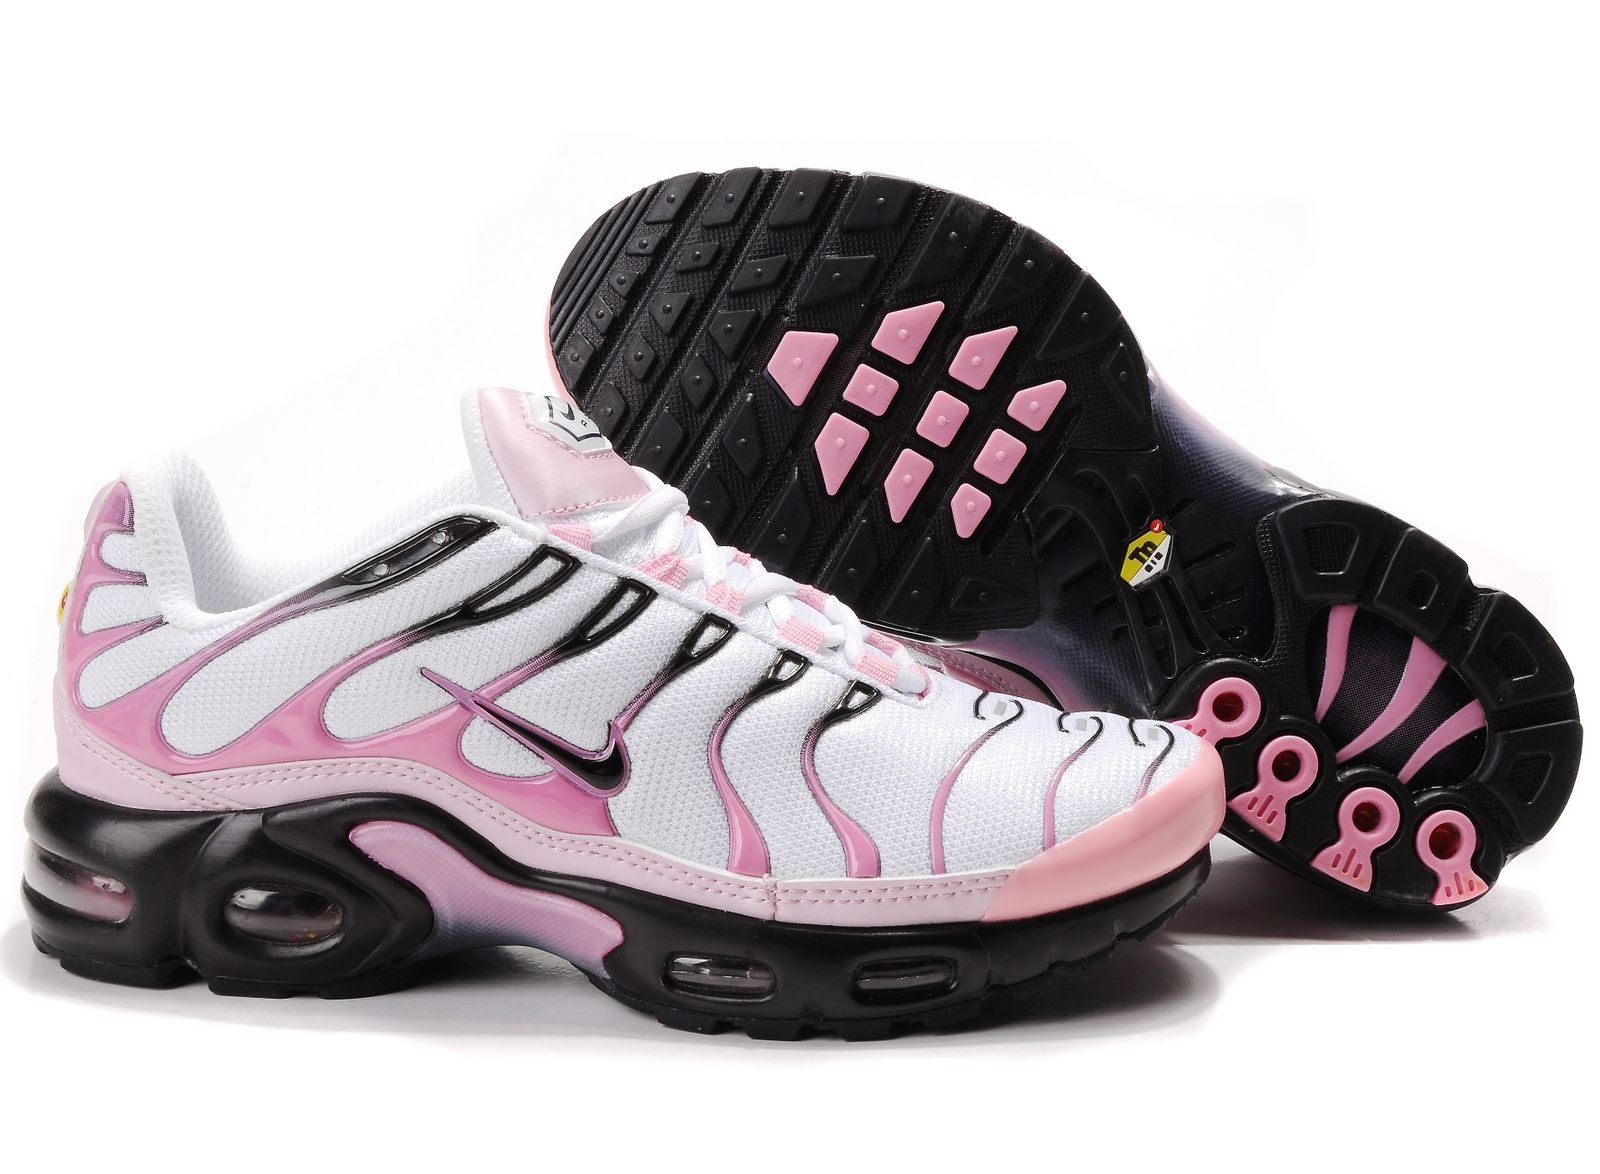 good selling online store official store Shop basket femme nike tn requin site fiable 921